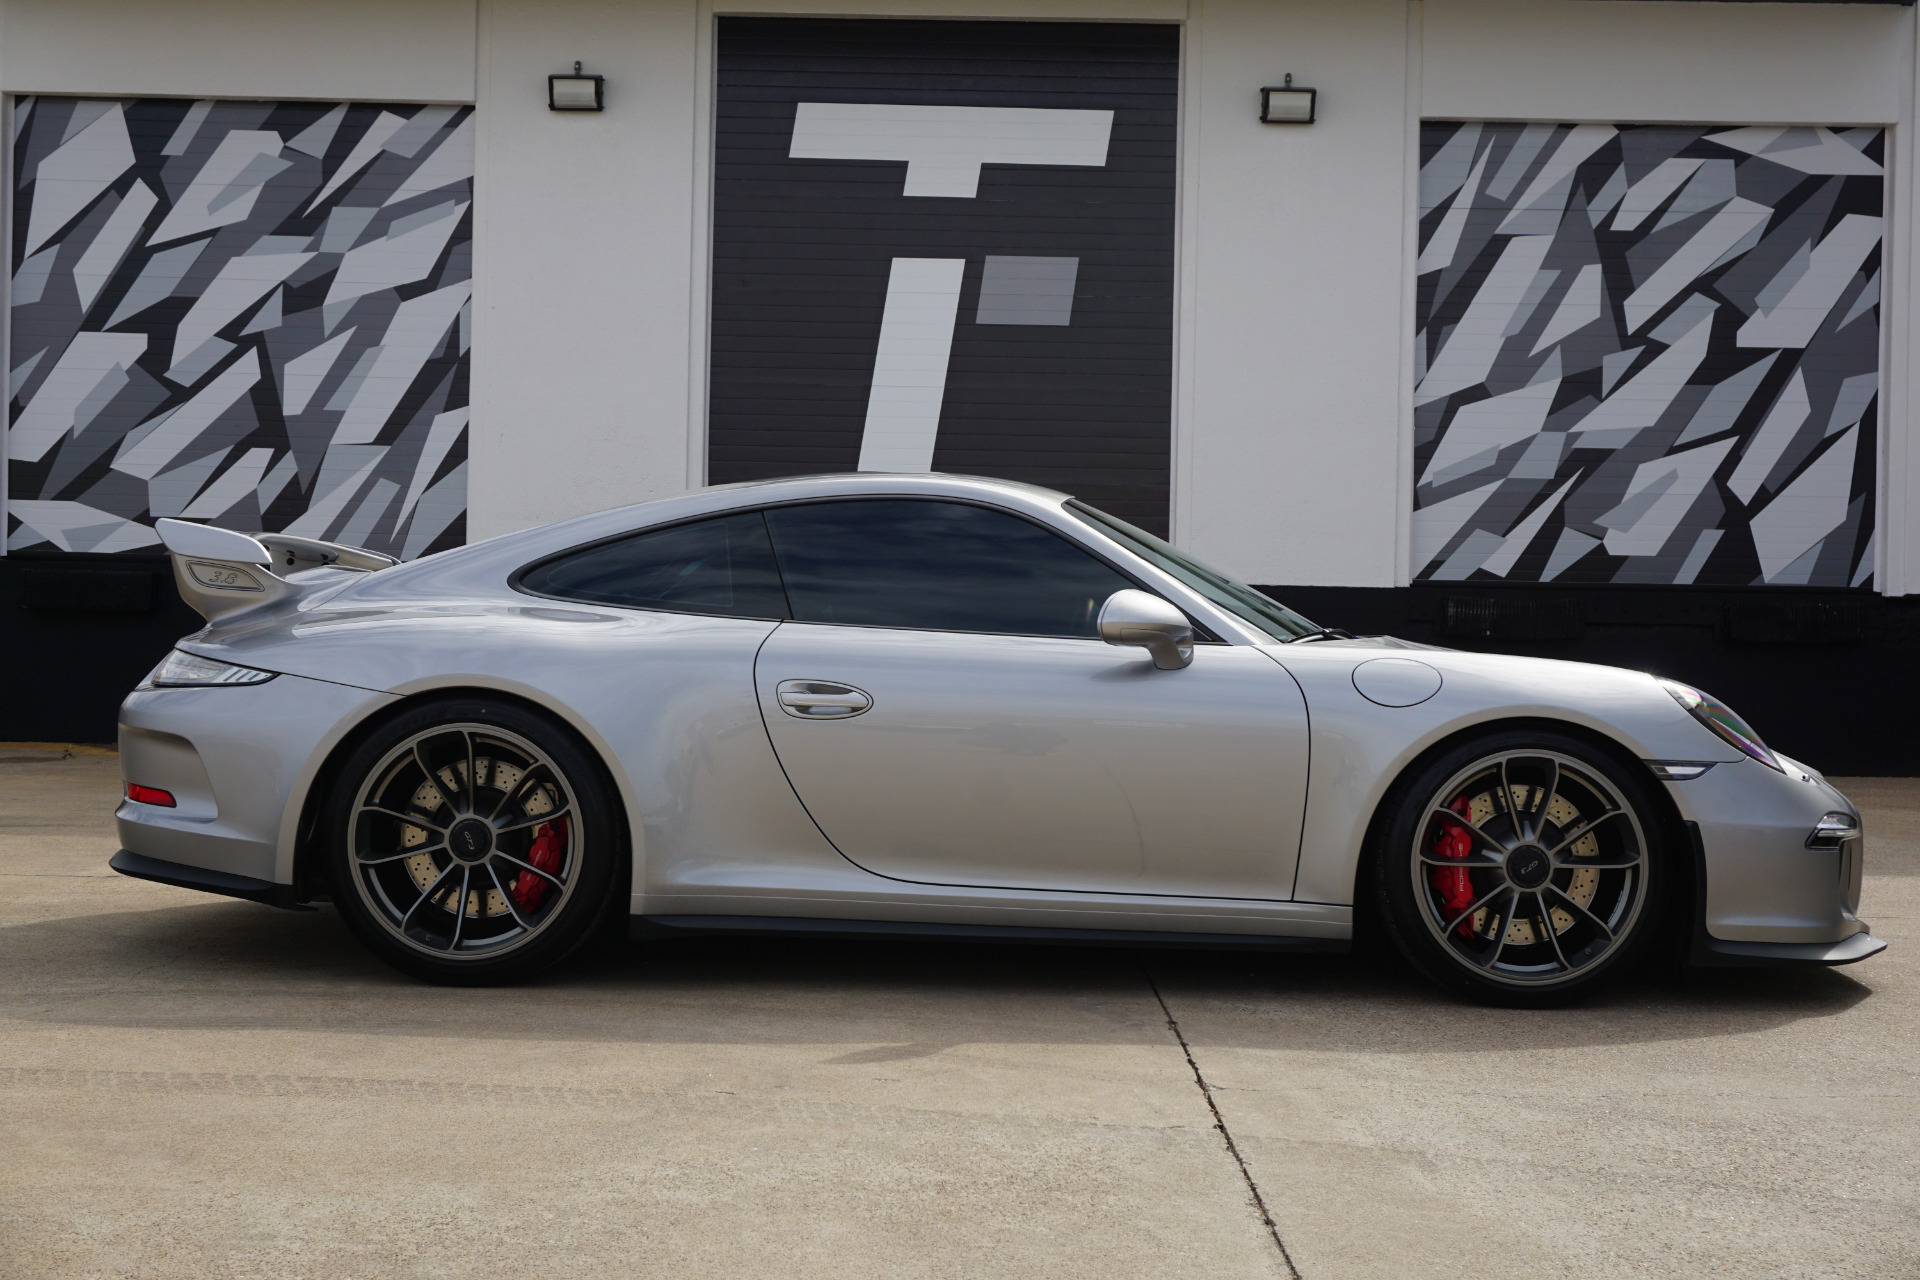 Used 2014 Porsche 911 Gt3 For Sale 122 900 Tactical